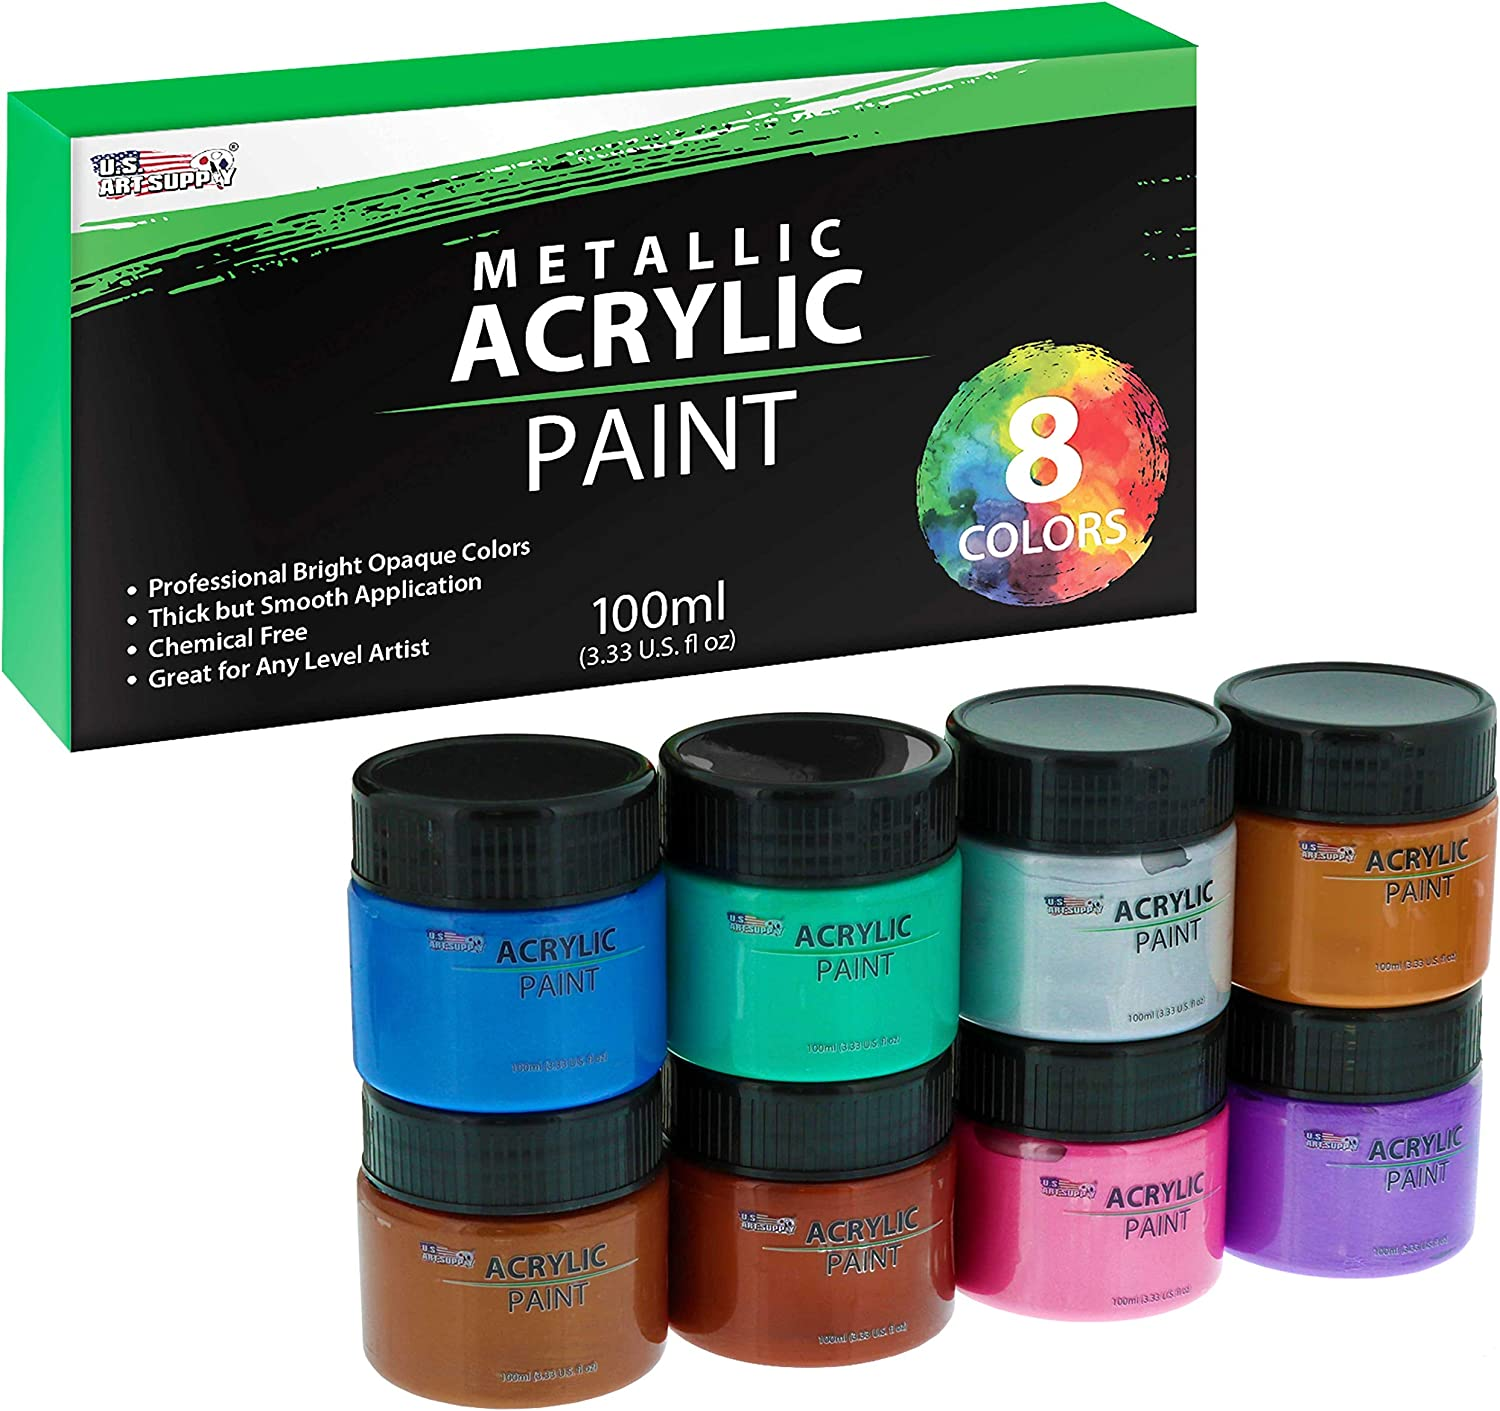 U.S. Art Selling and selling Supply 8 Color Metallic Jar Set 100ml Bot Paint NEW before selling Acrylic